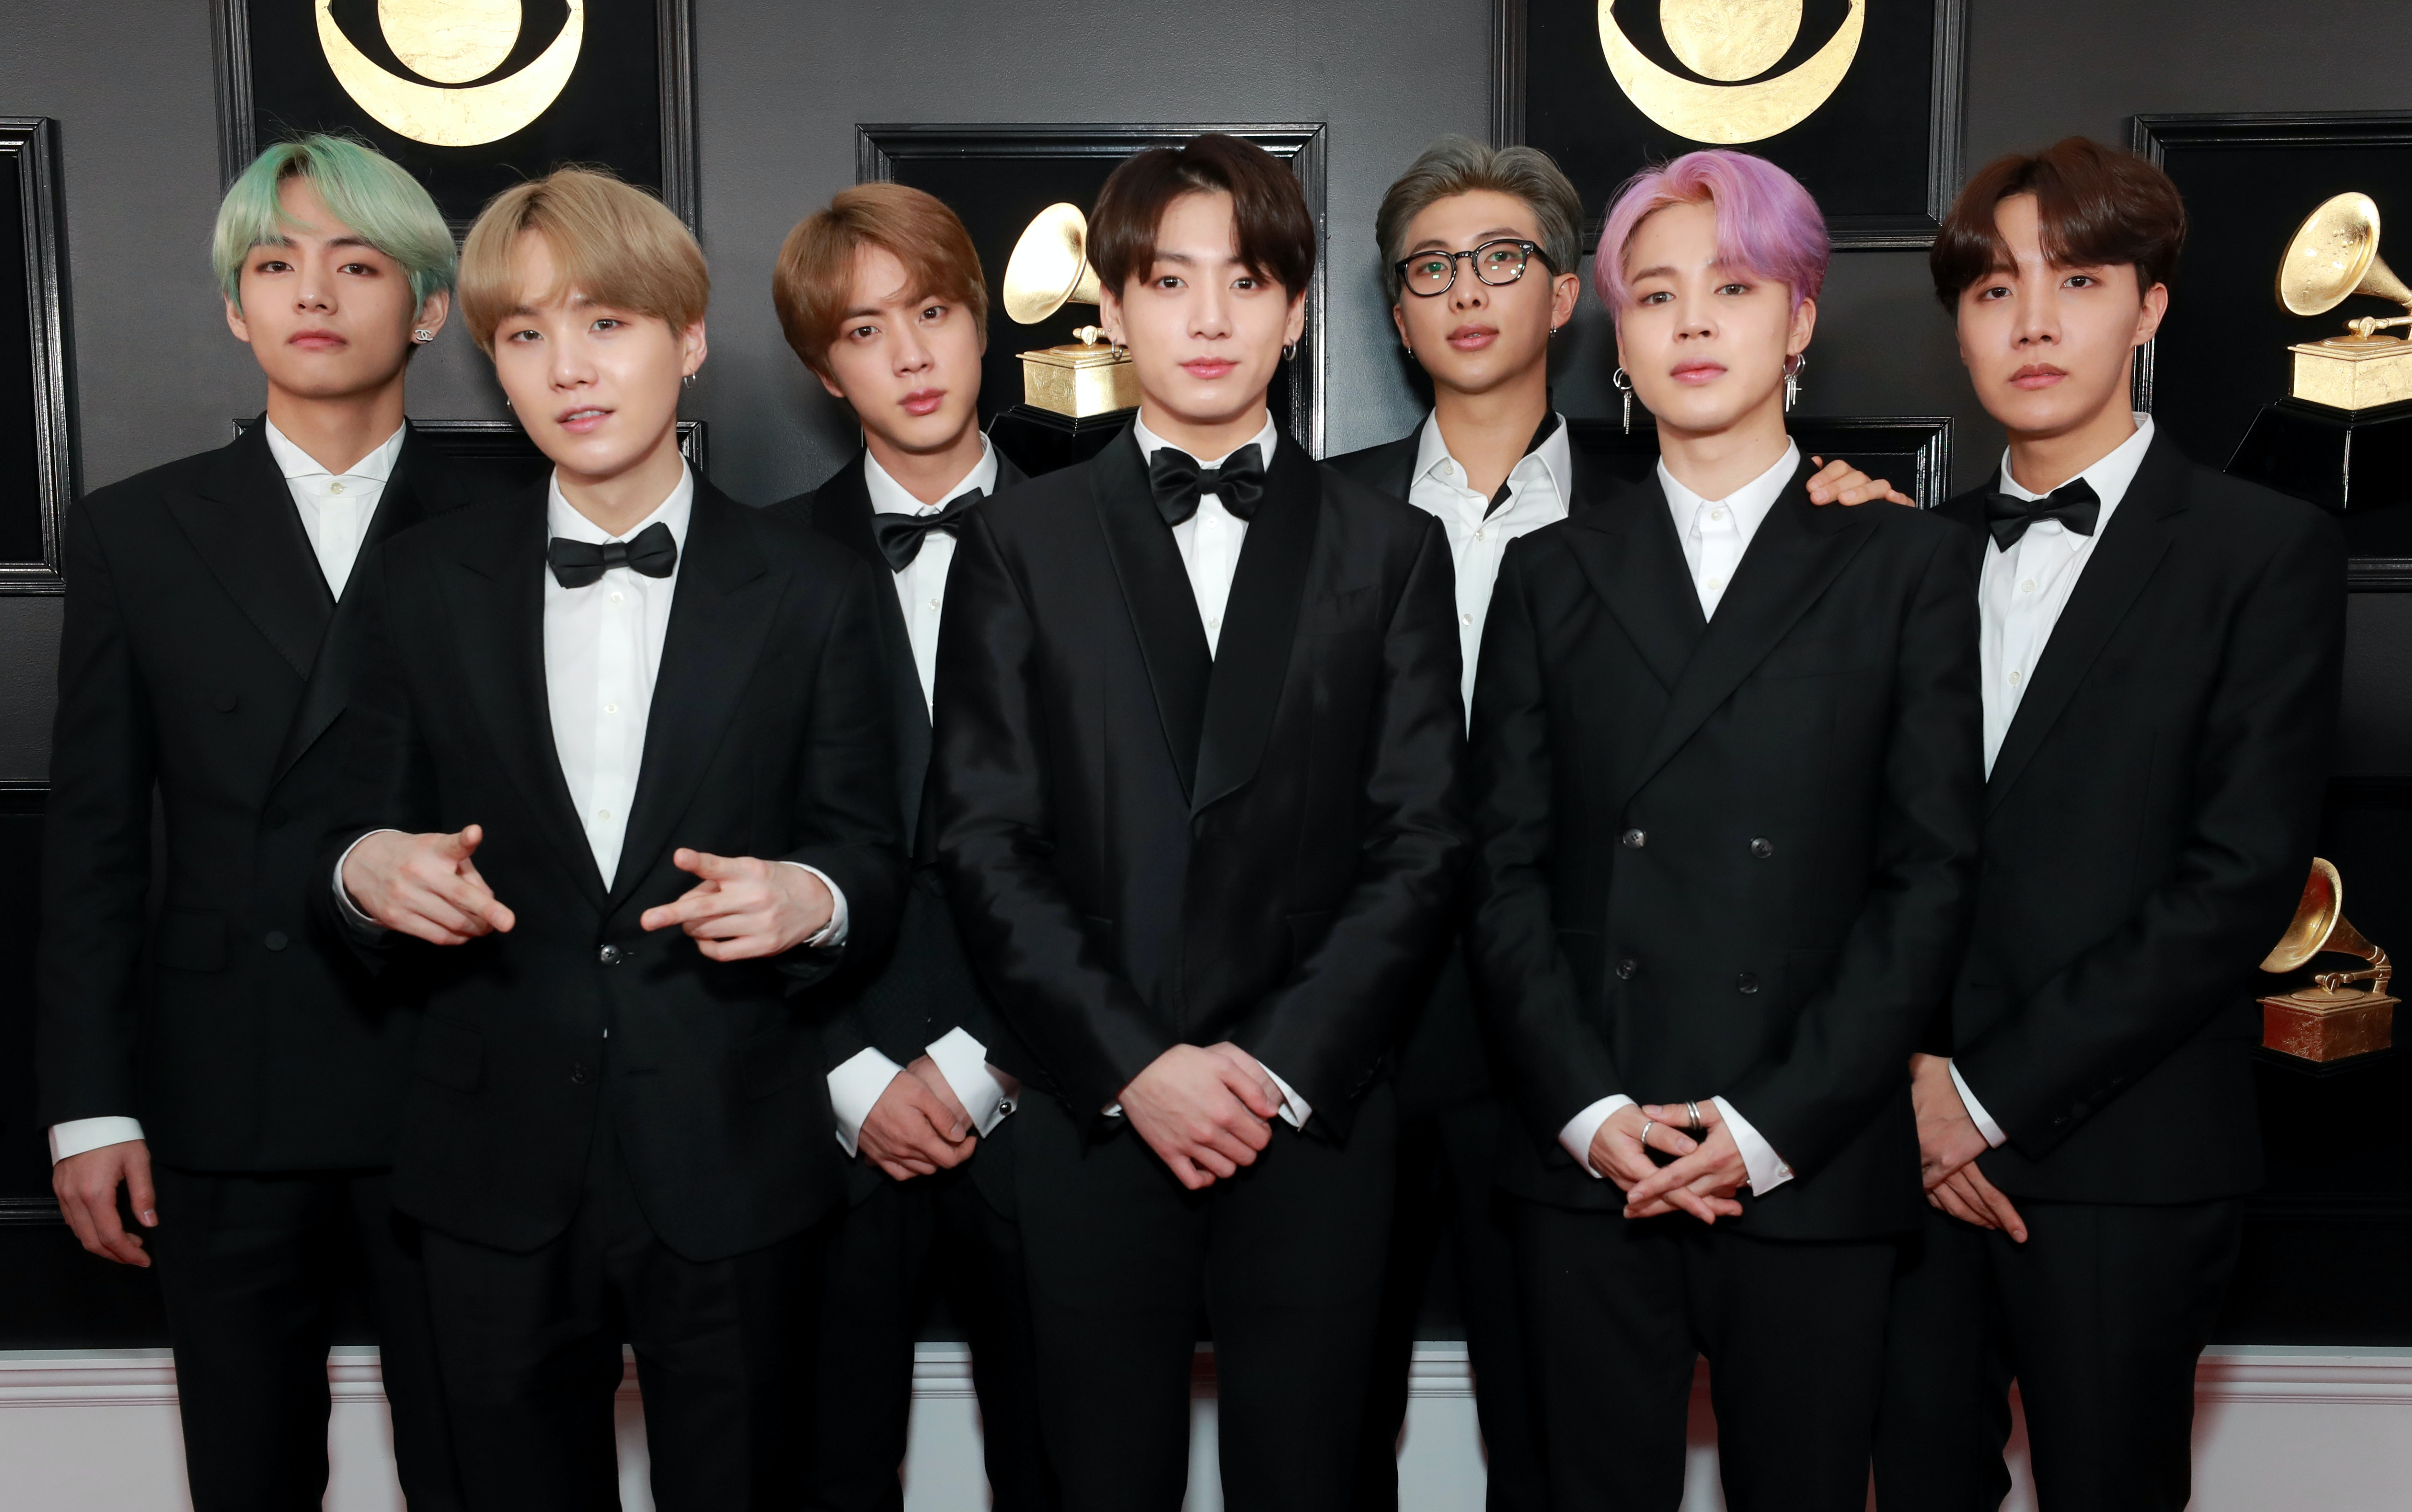 Dr  Murray Stein's Comments About BTS' 'Map Of The Soul: Persona